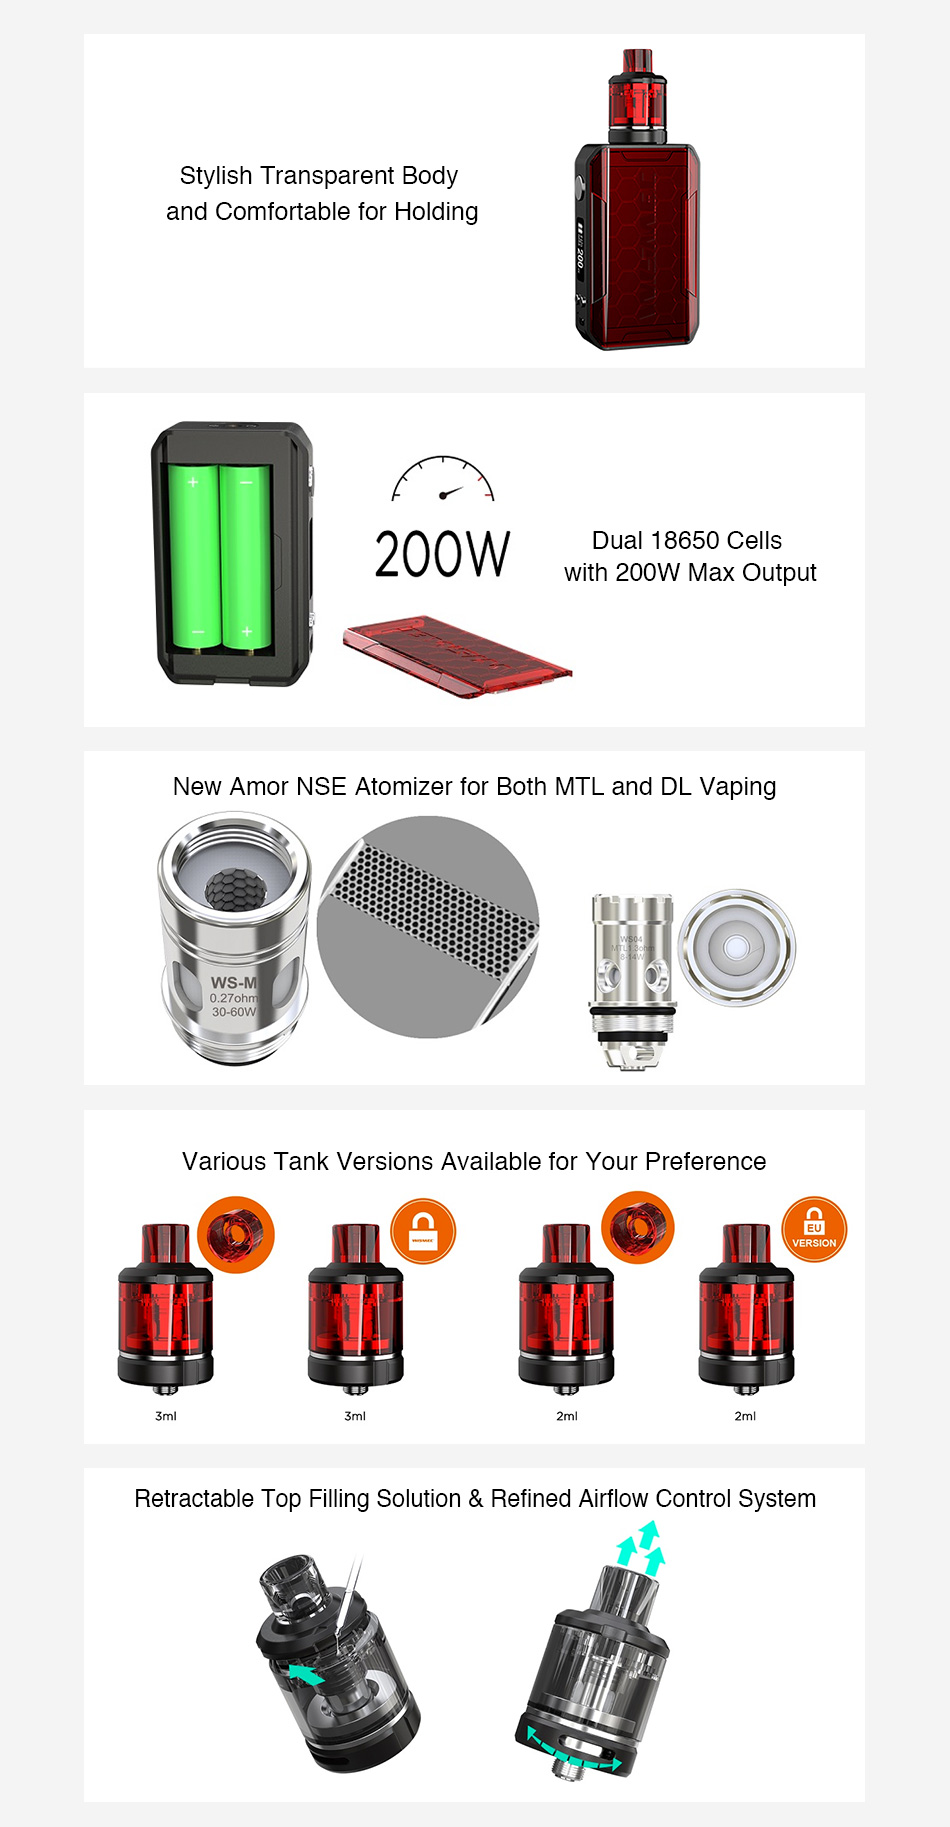 https://d1844rainhf76j.cloudfront.net/goods_desc/WISMEC-SINUOUS-V200-200W-TC-Kit-with-Amor-NSE_06_266464.jpg